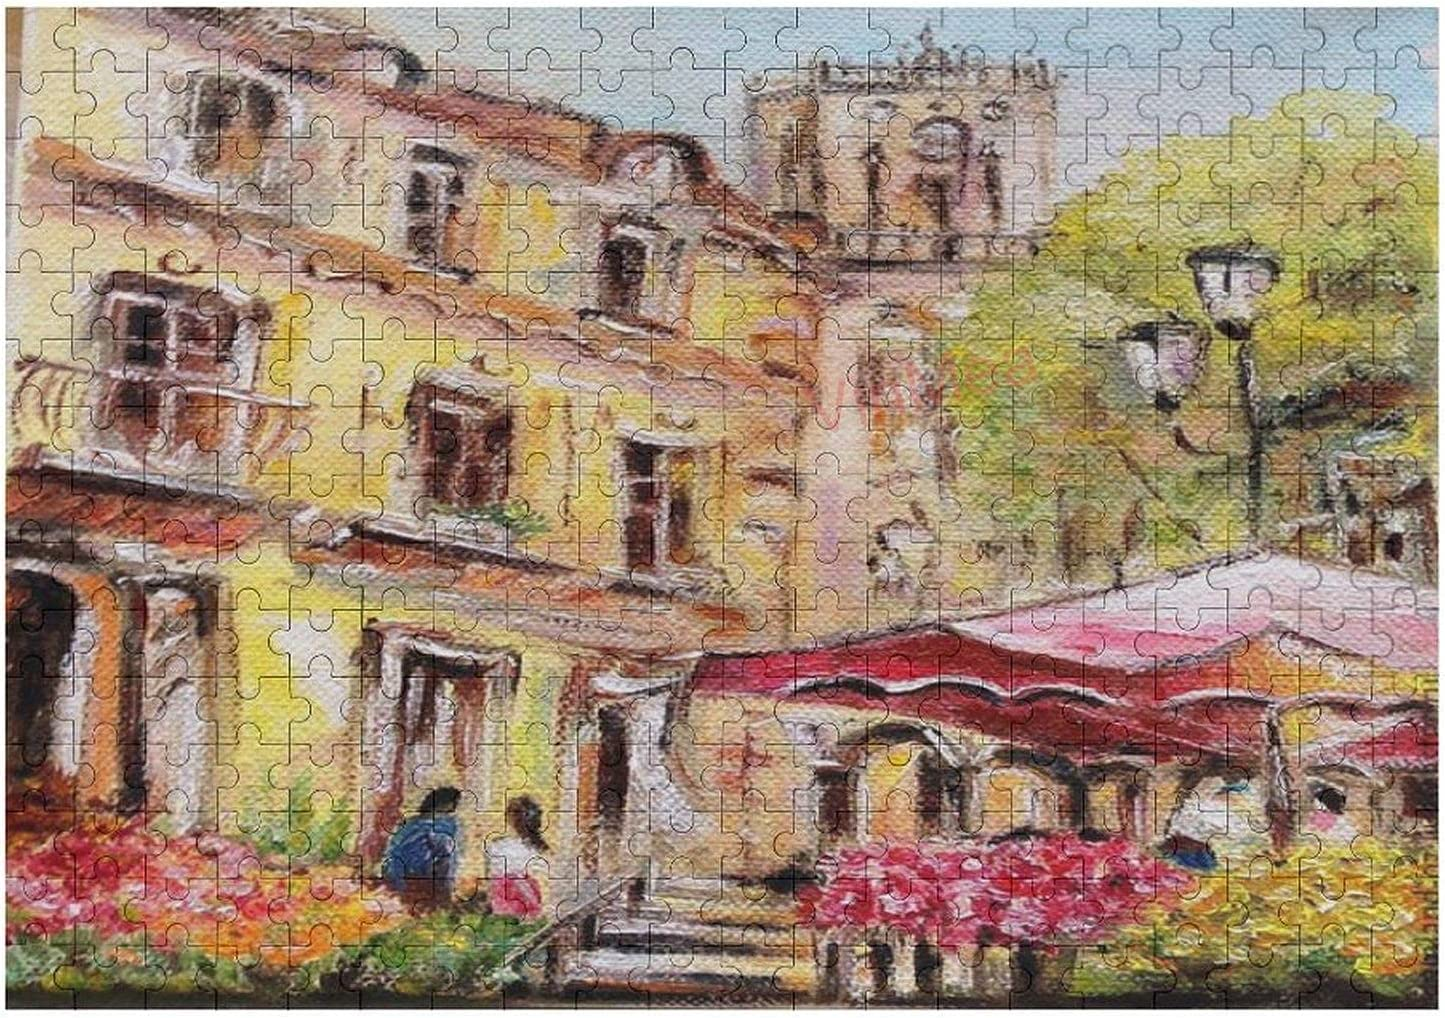 300 Pieces Jigsaw Puzzle Oil Painting Marche Aux Fleurs Jigsaw Puzzle for Child, Adults Home Decor Fun Game Toys Birthday Gift